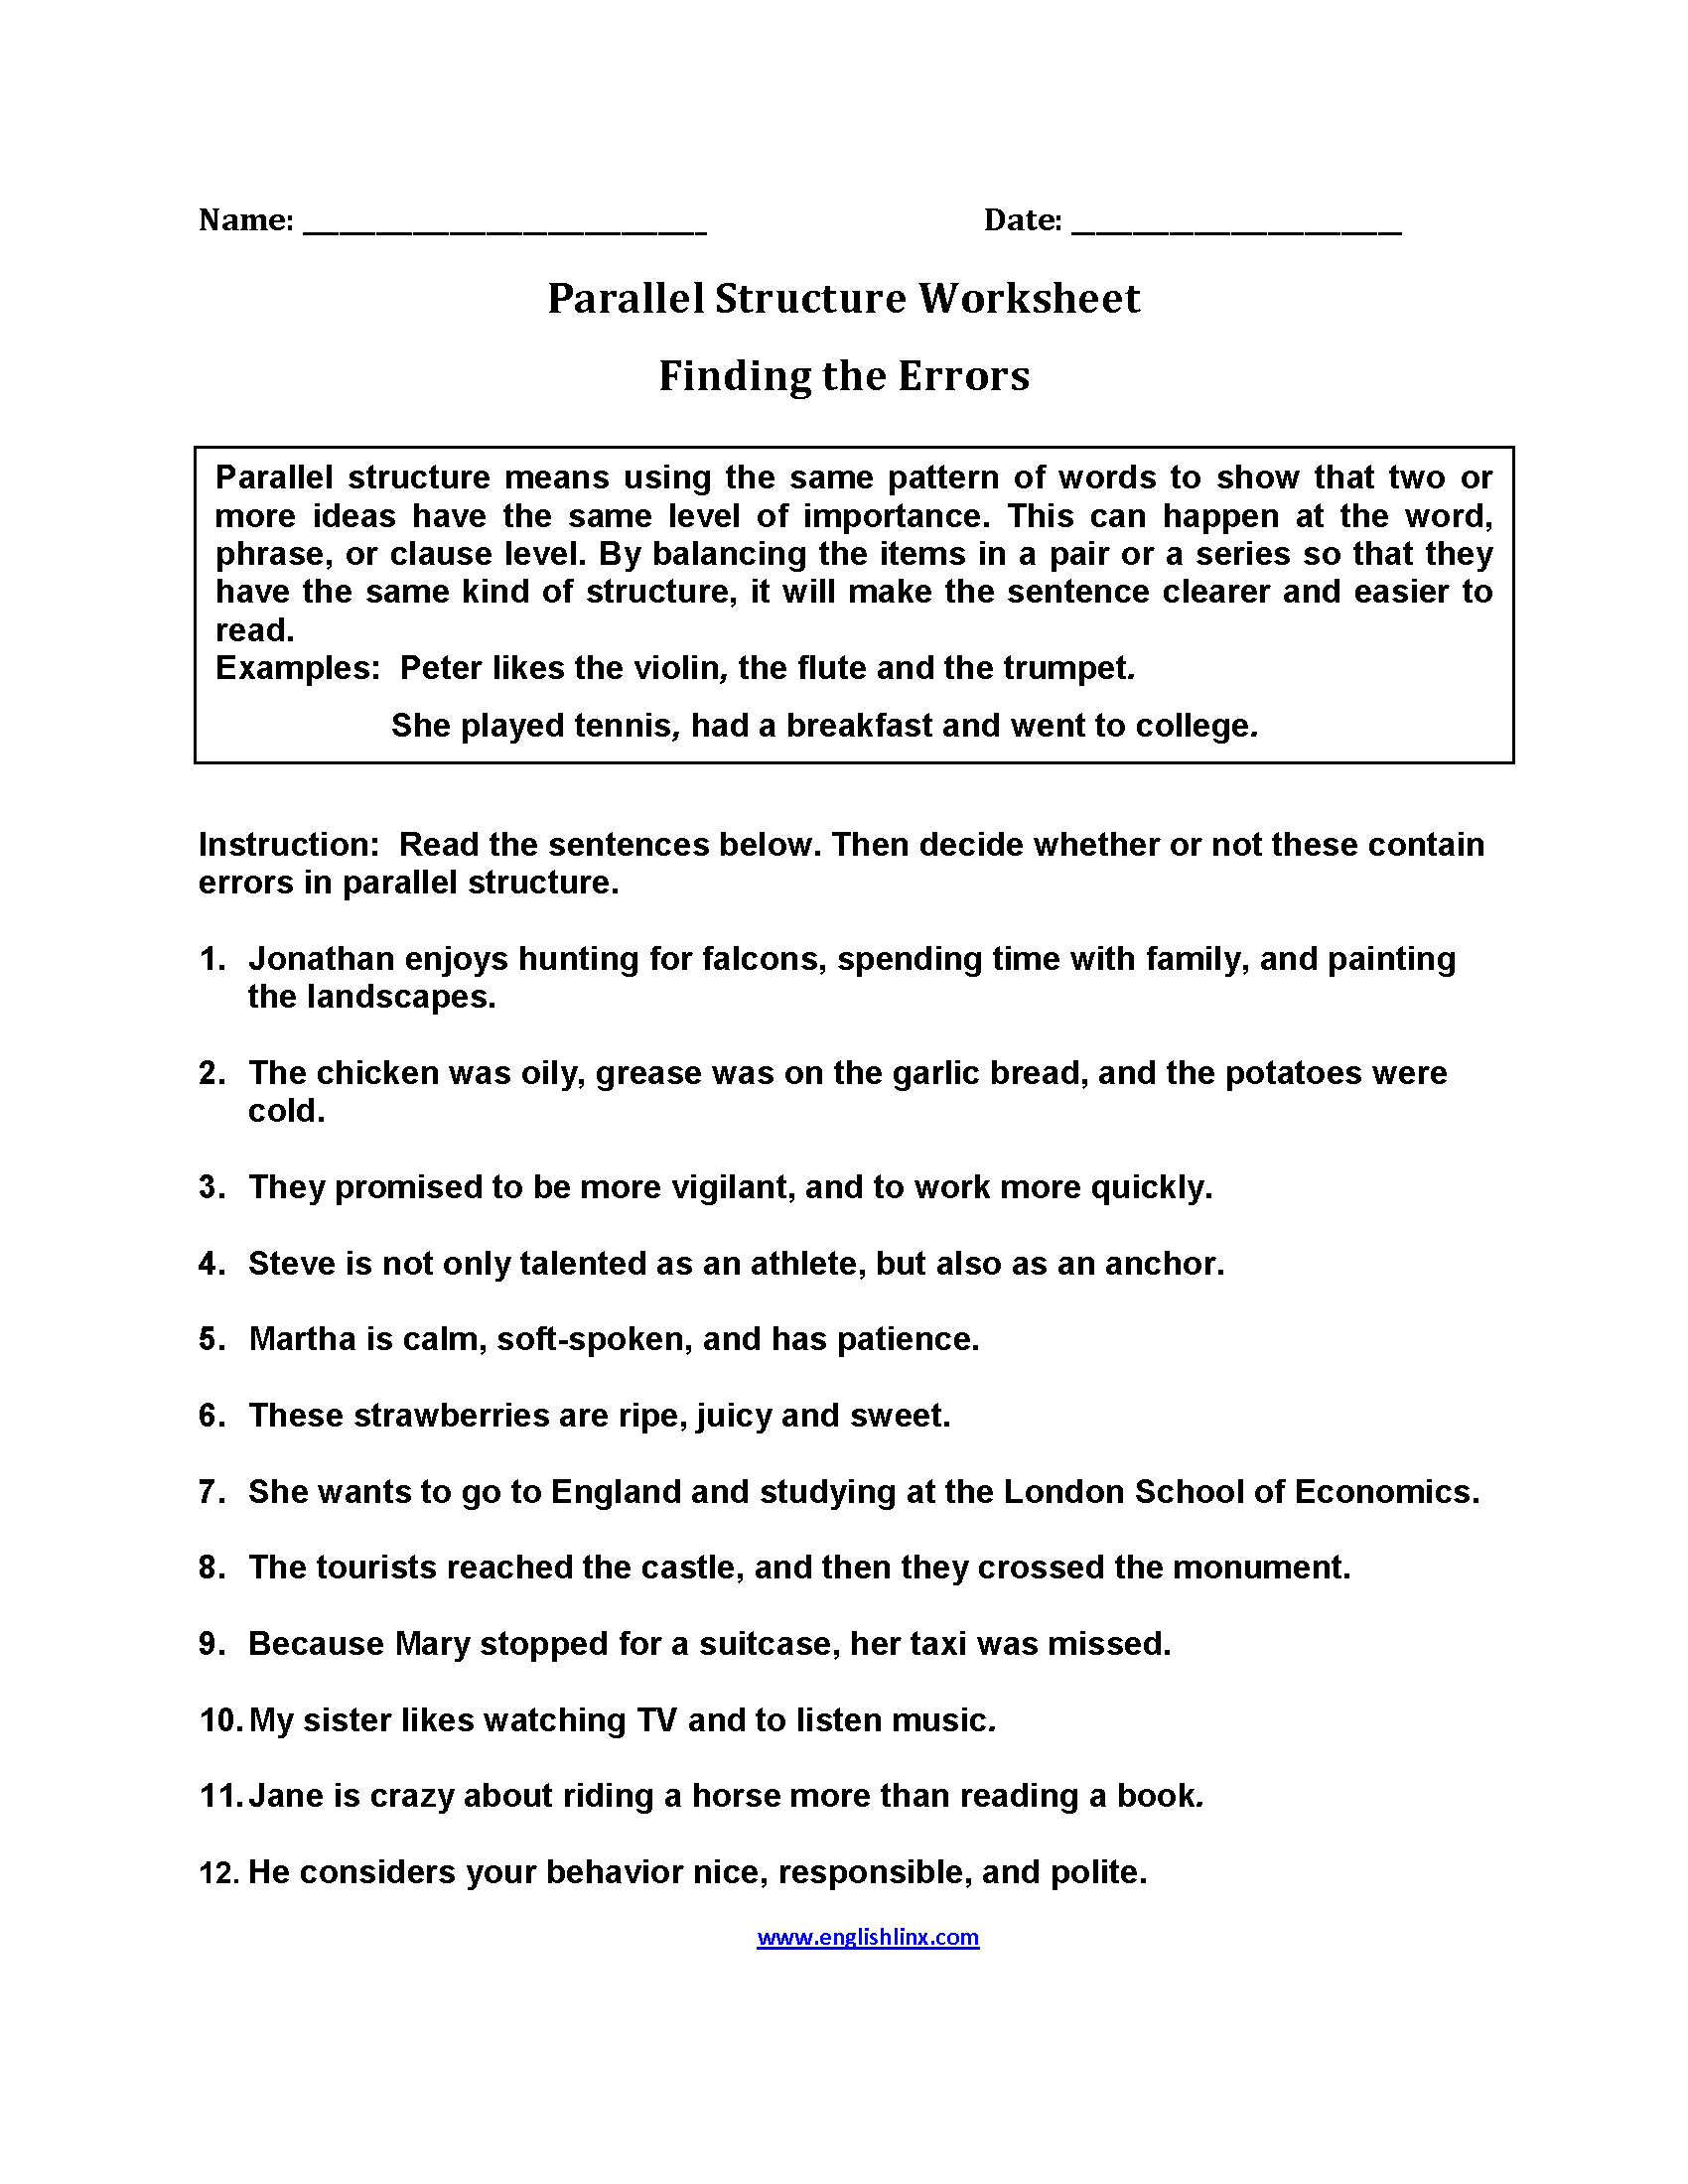 Parallel Sentence Structure Worksheets with Answers - deltasport.info